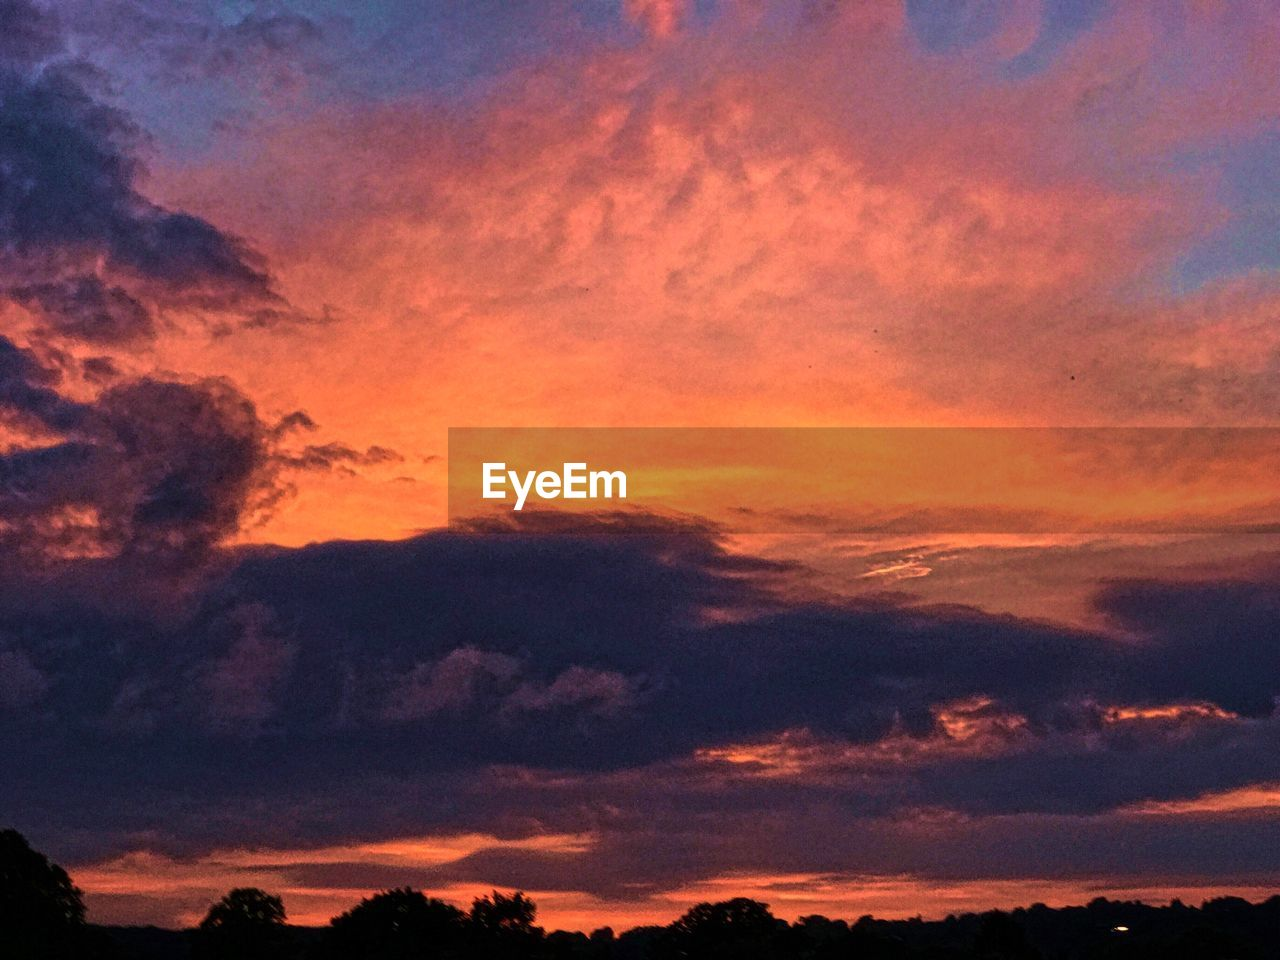 sunset, beauty in nature, nature, sky, dramatic sky, scenics, tranquil scene, tranquility, orange color, cloud - sky, silhouette, idyllic, atmospheric mood, low angle view, no people, sky only, outdoors, backgrounds, awe, day